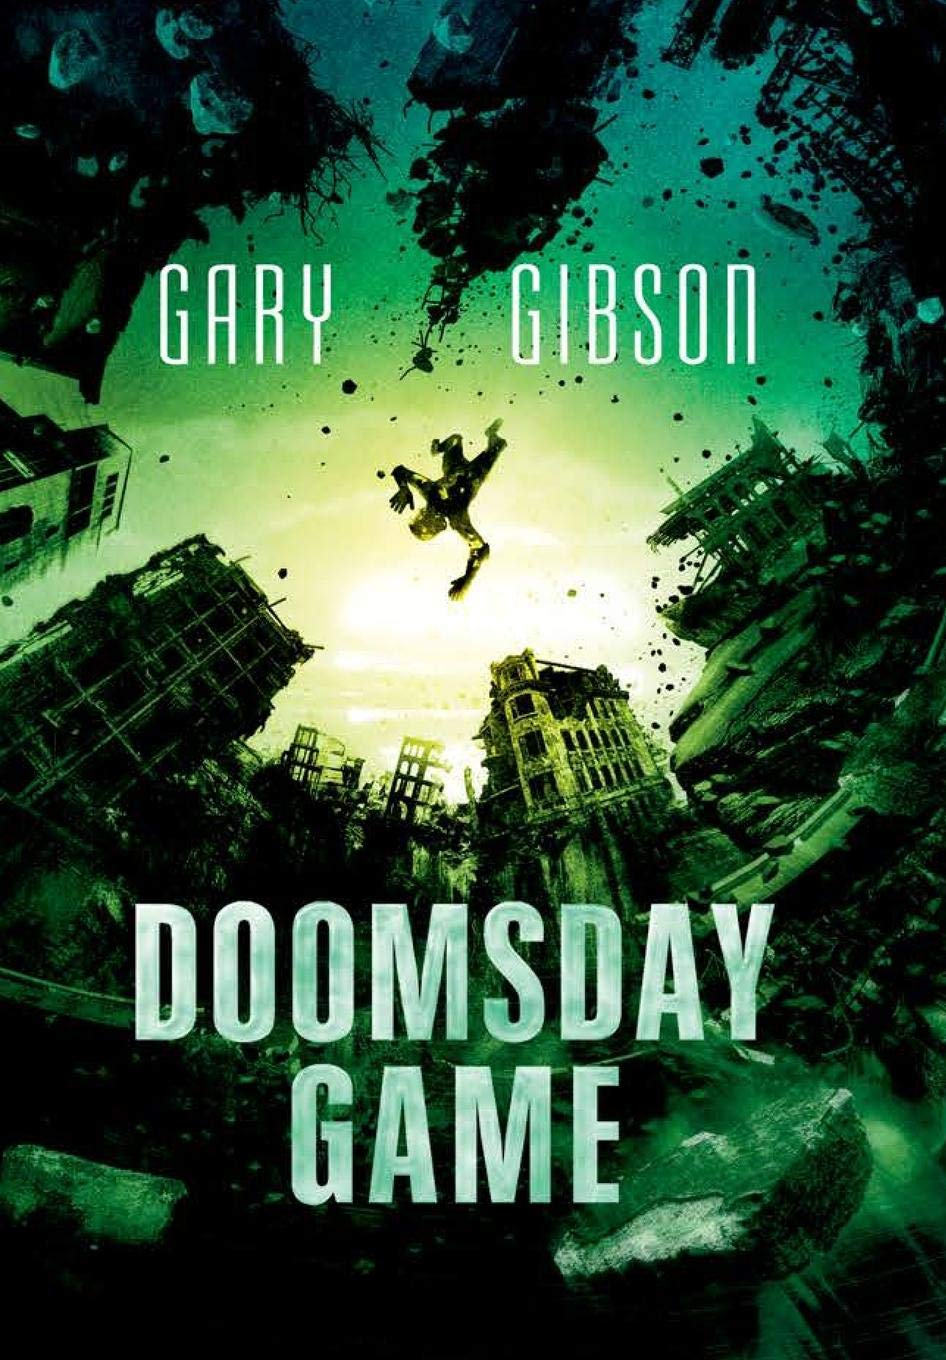 « Doomsday Game », de Gary Gibson